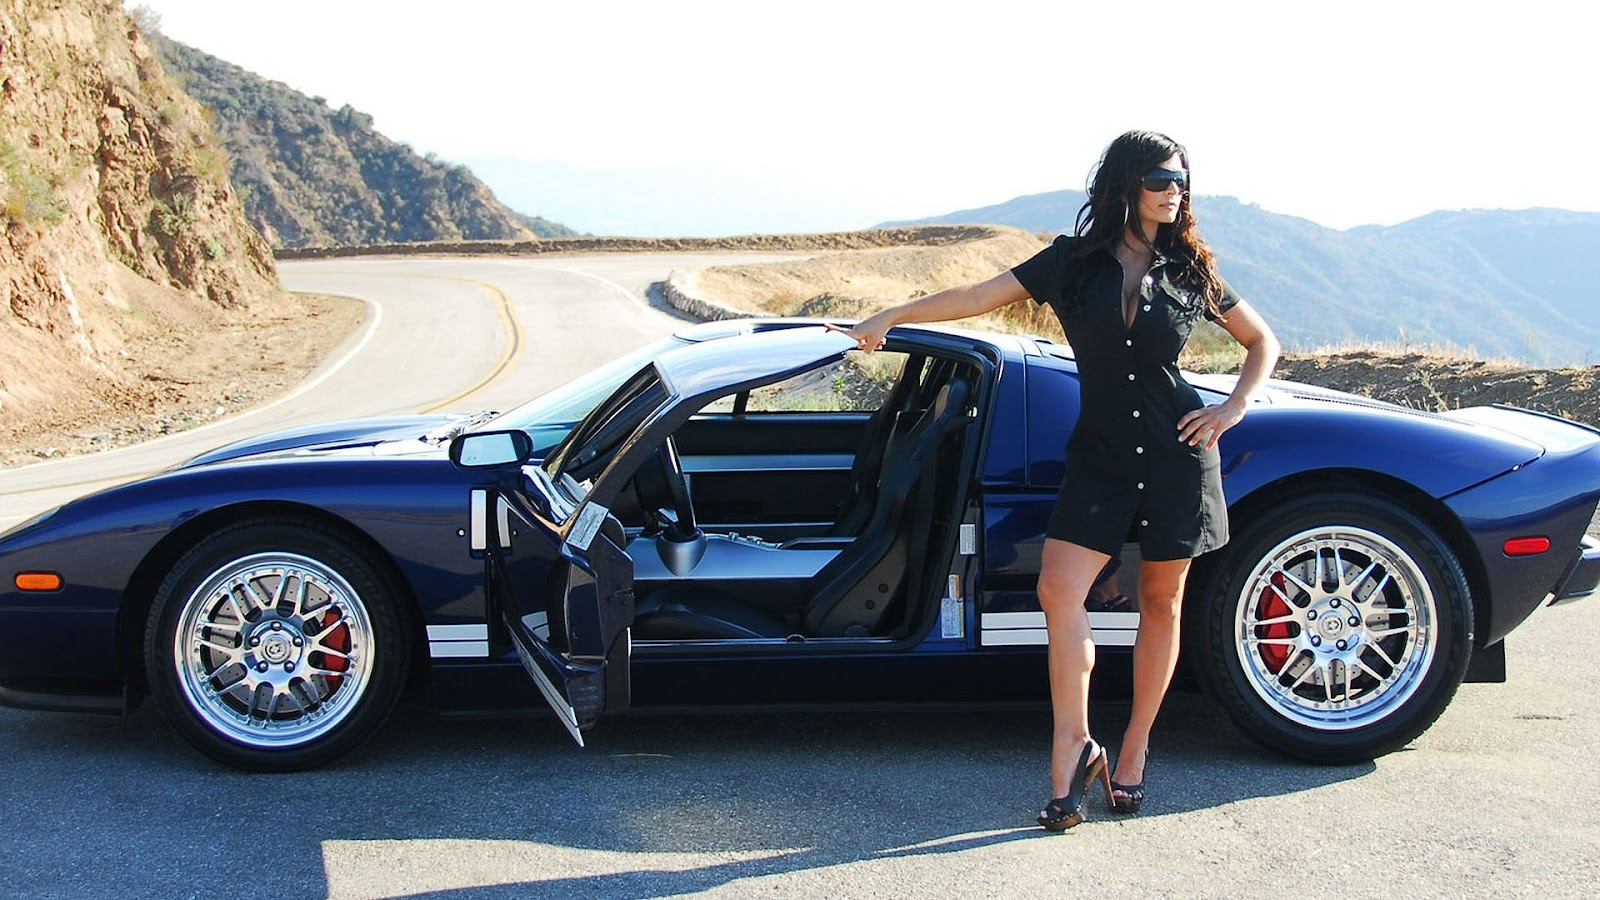 Top Cool Cars 15 Cars And Girls Pictures-3532